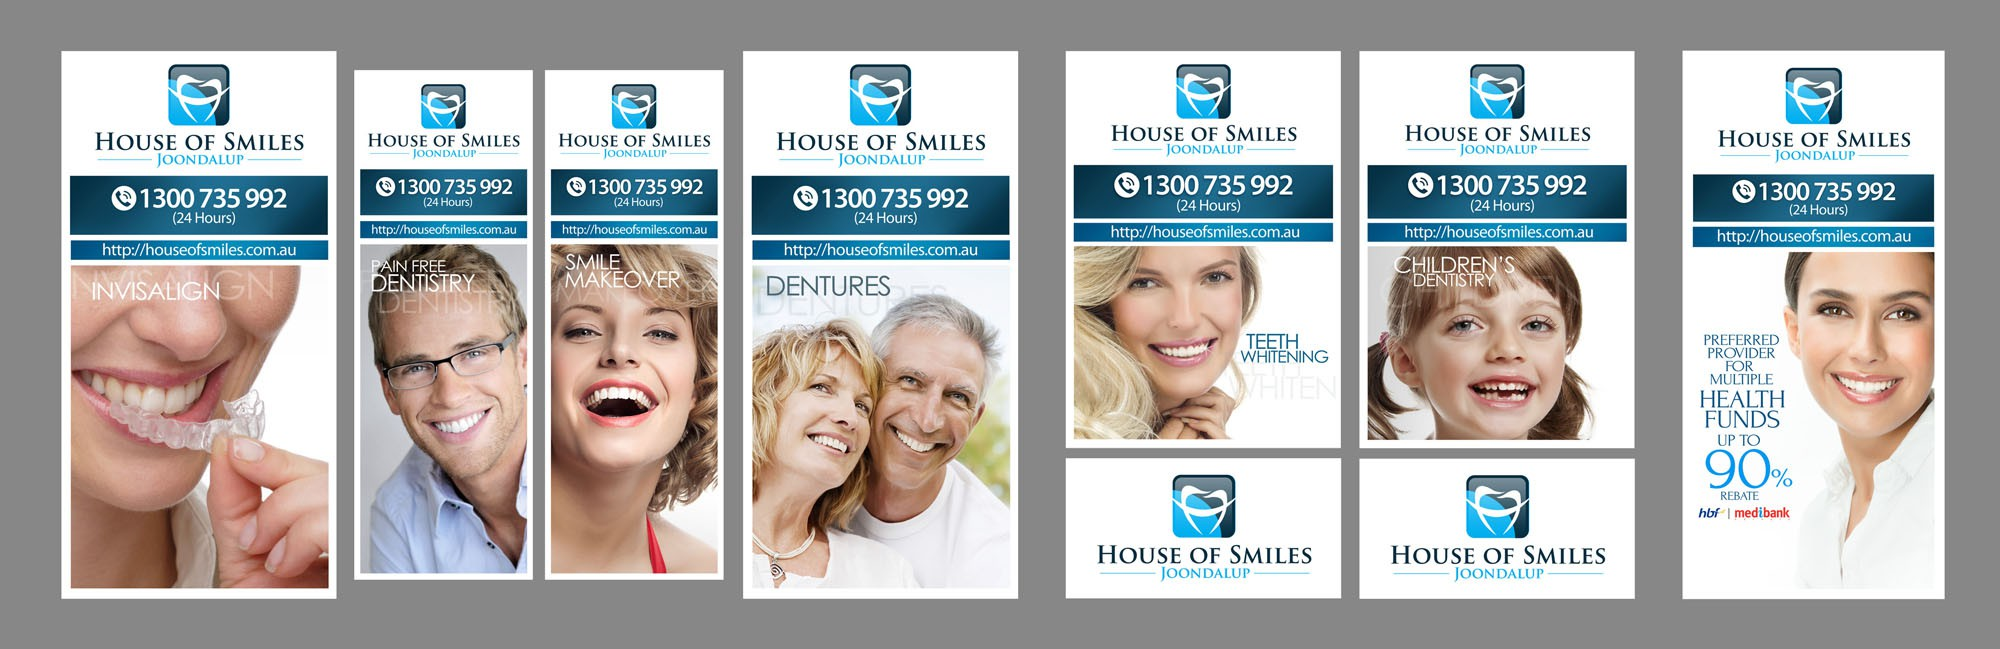 HIGH END DENTAL SURGERY NEEDS BANNERS FOR WINDOWS